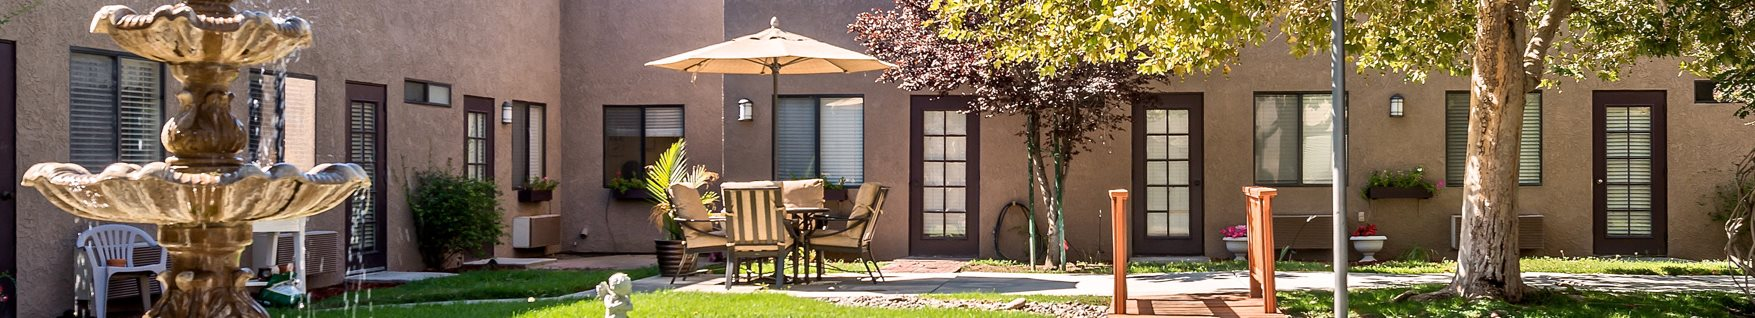 Lush Courtyards with Trickling Fountains at Sierra Vista Independent and Assisted Living, California